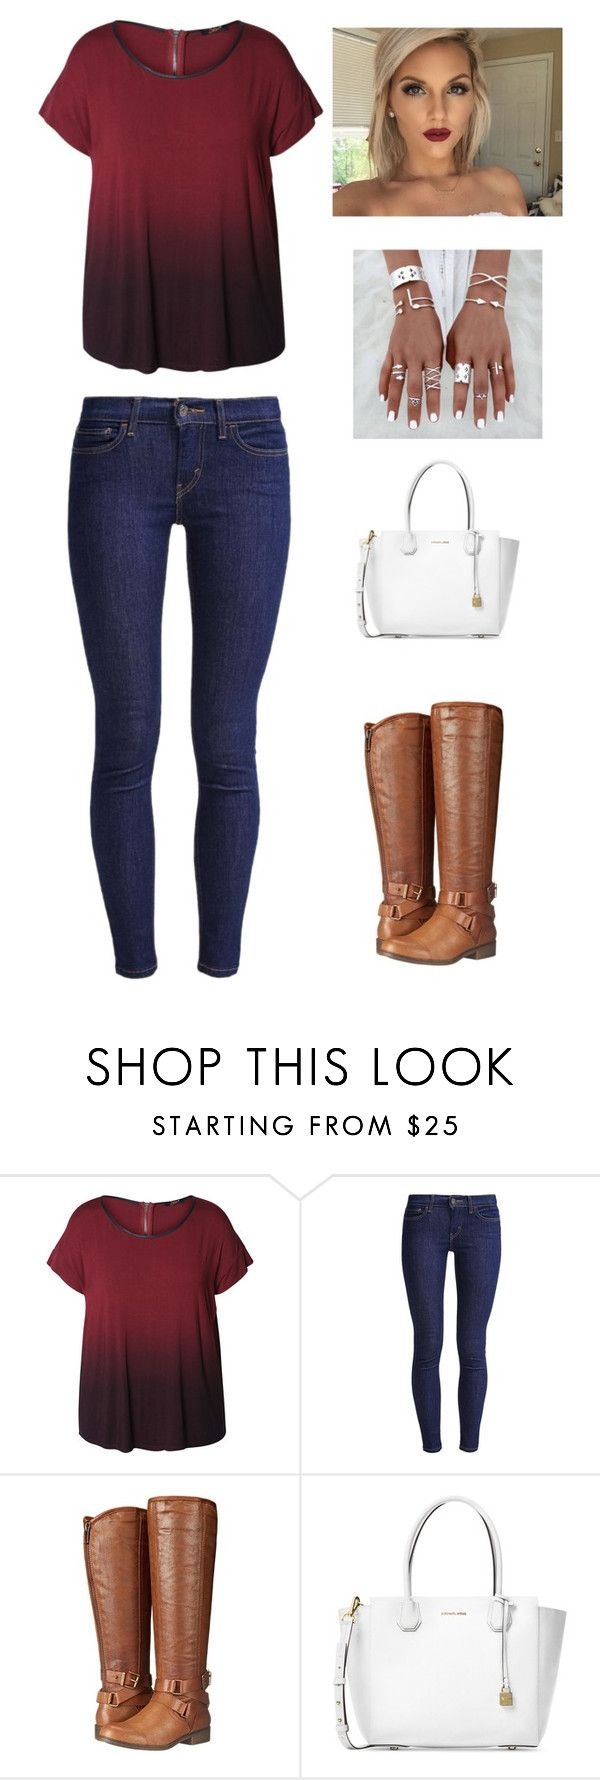 """""""Single Ladies Put Your Hands Up """" by rachelroo01 ❤ liked on Polyvore featuring Dex, Levi's, Madden Girl, Michael Kors and plus size clothing"""